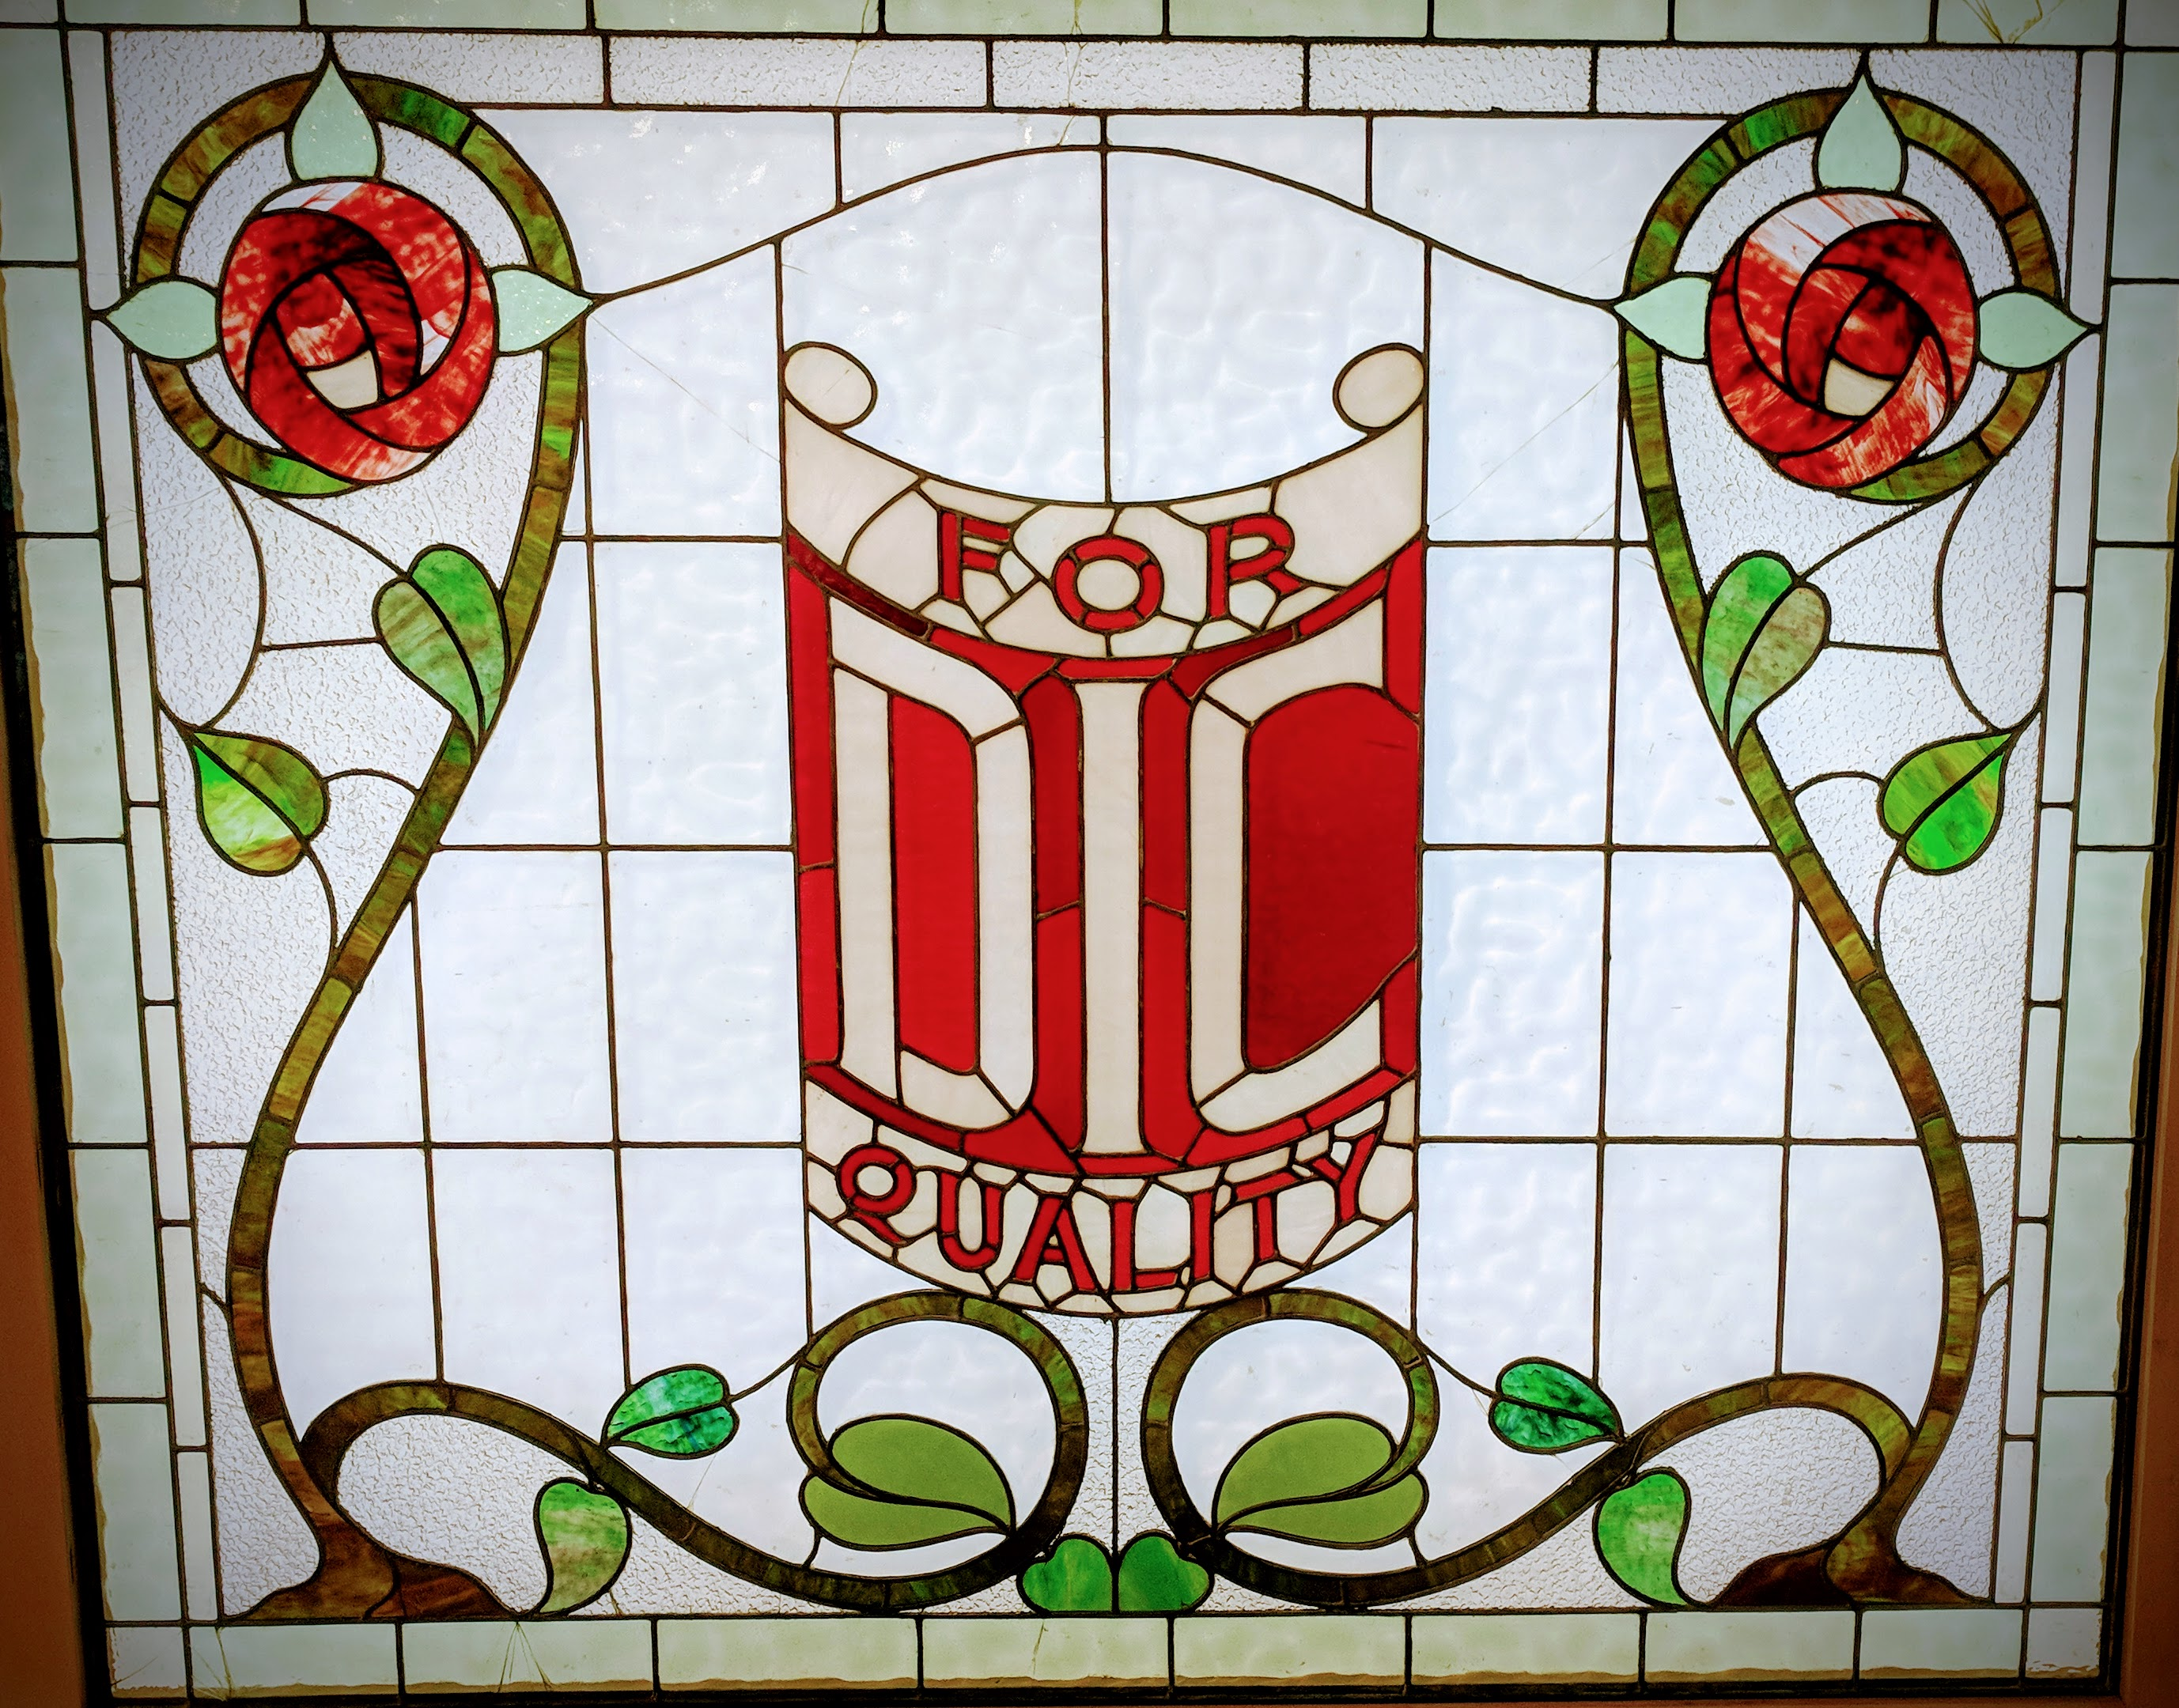 'For DIC Quality', stained glass window